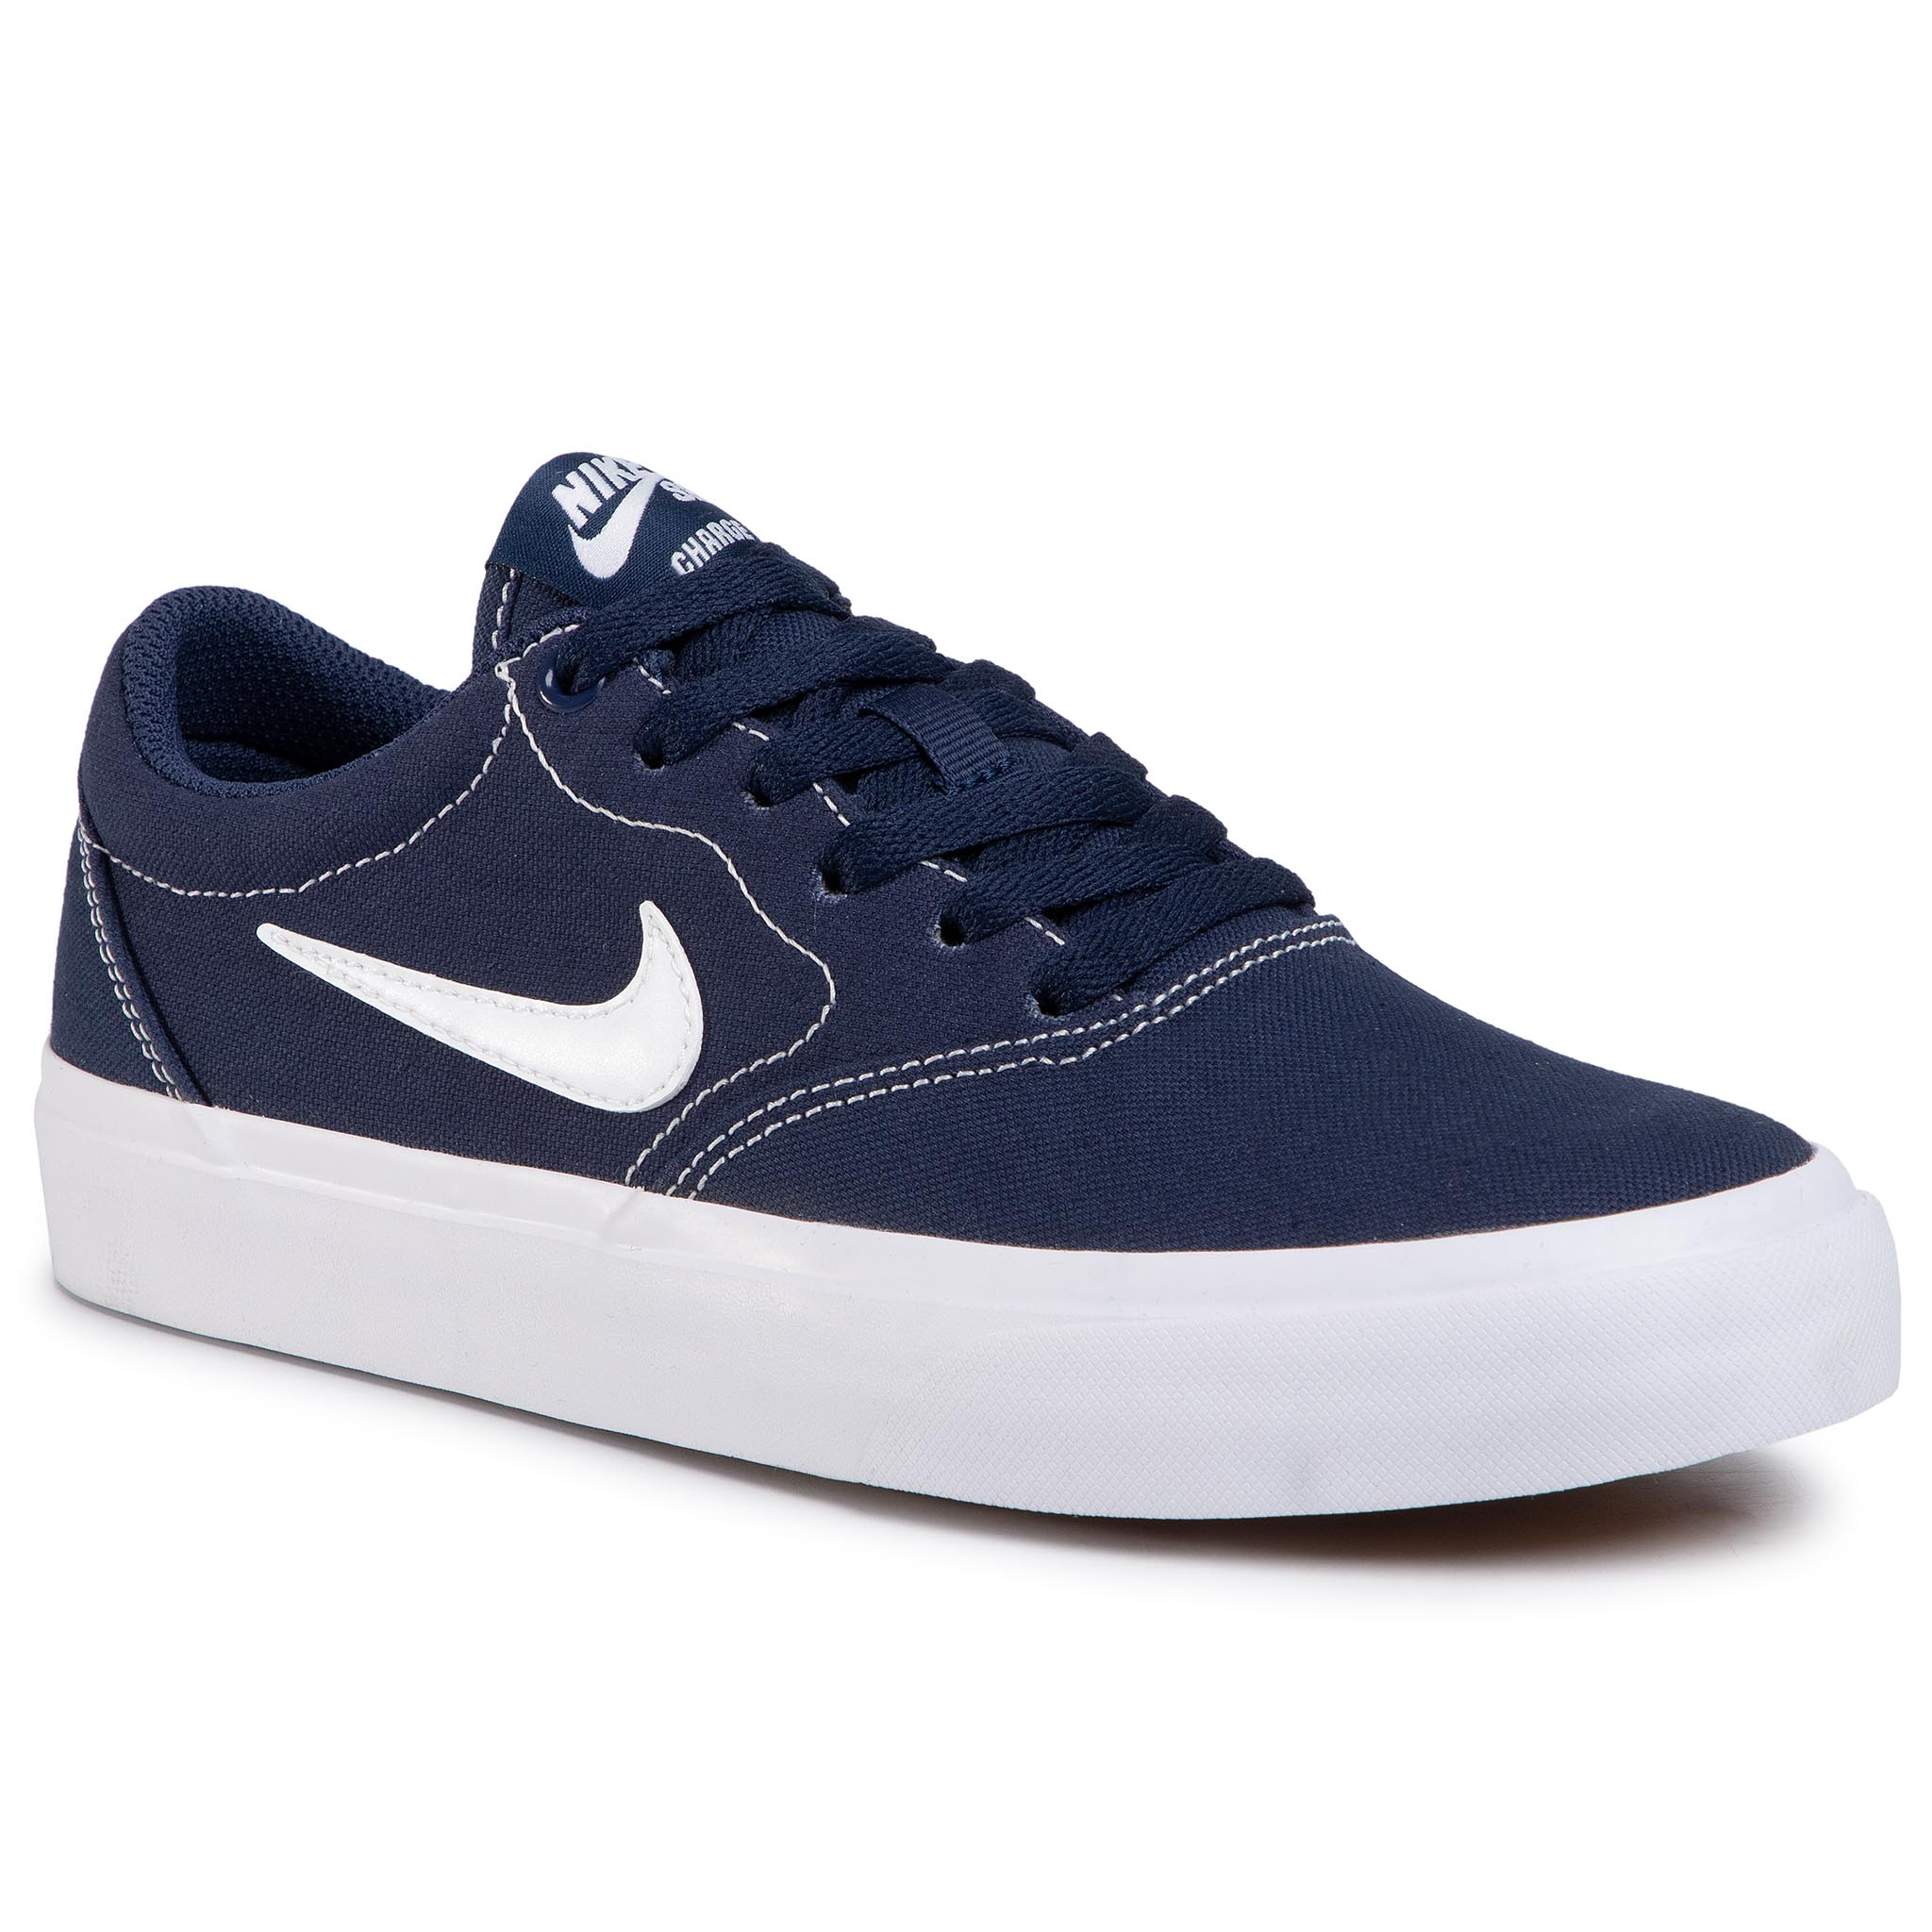 Pantofi Nike - Sb Charge Cnvs (GS) Cq0260 400 Midnight Navy/White imagine epantofi.ro 2021